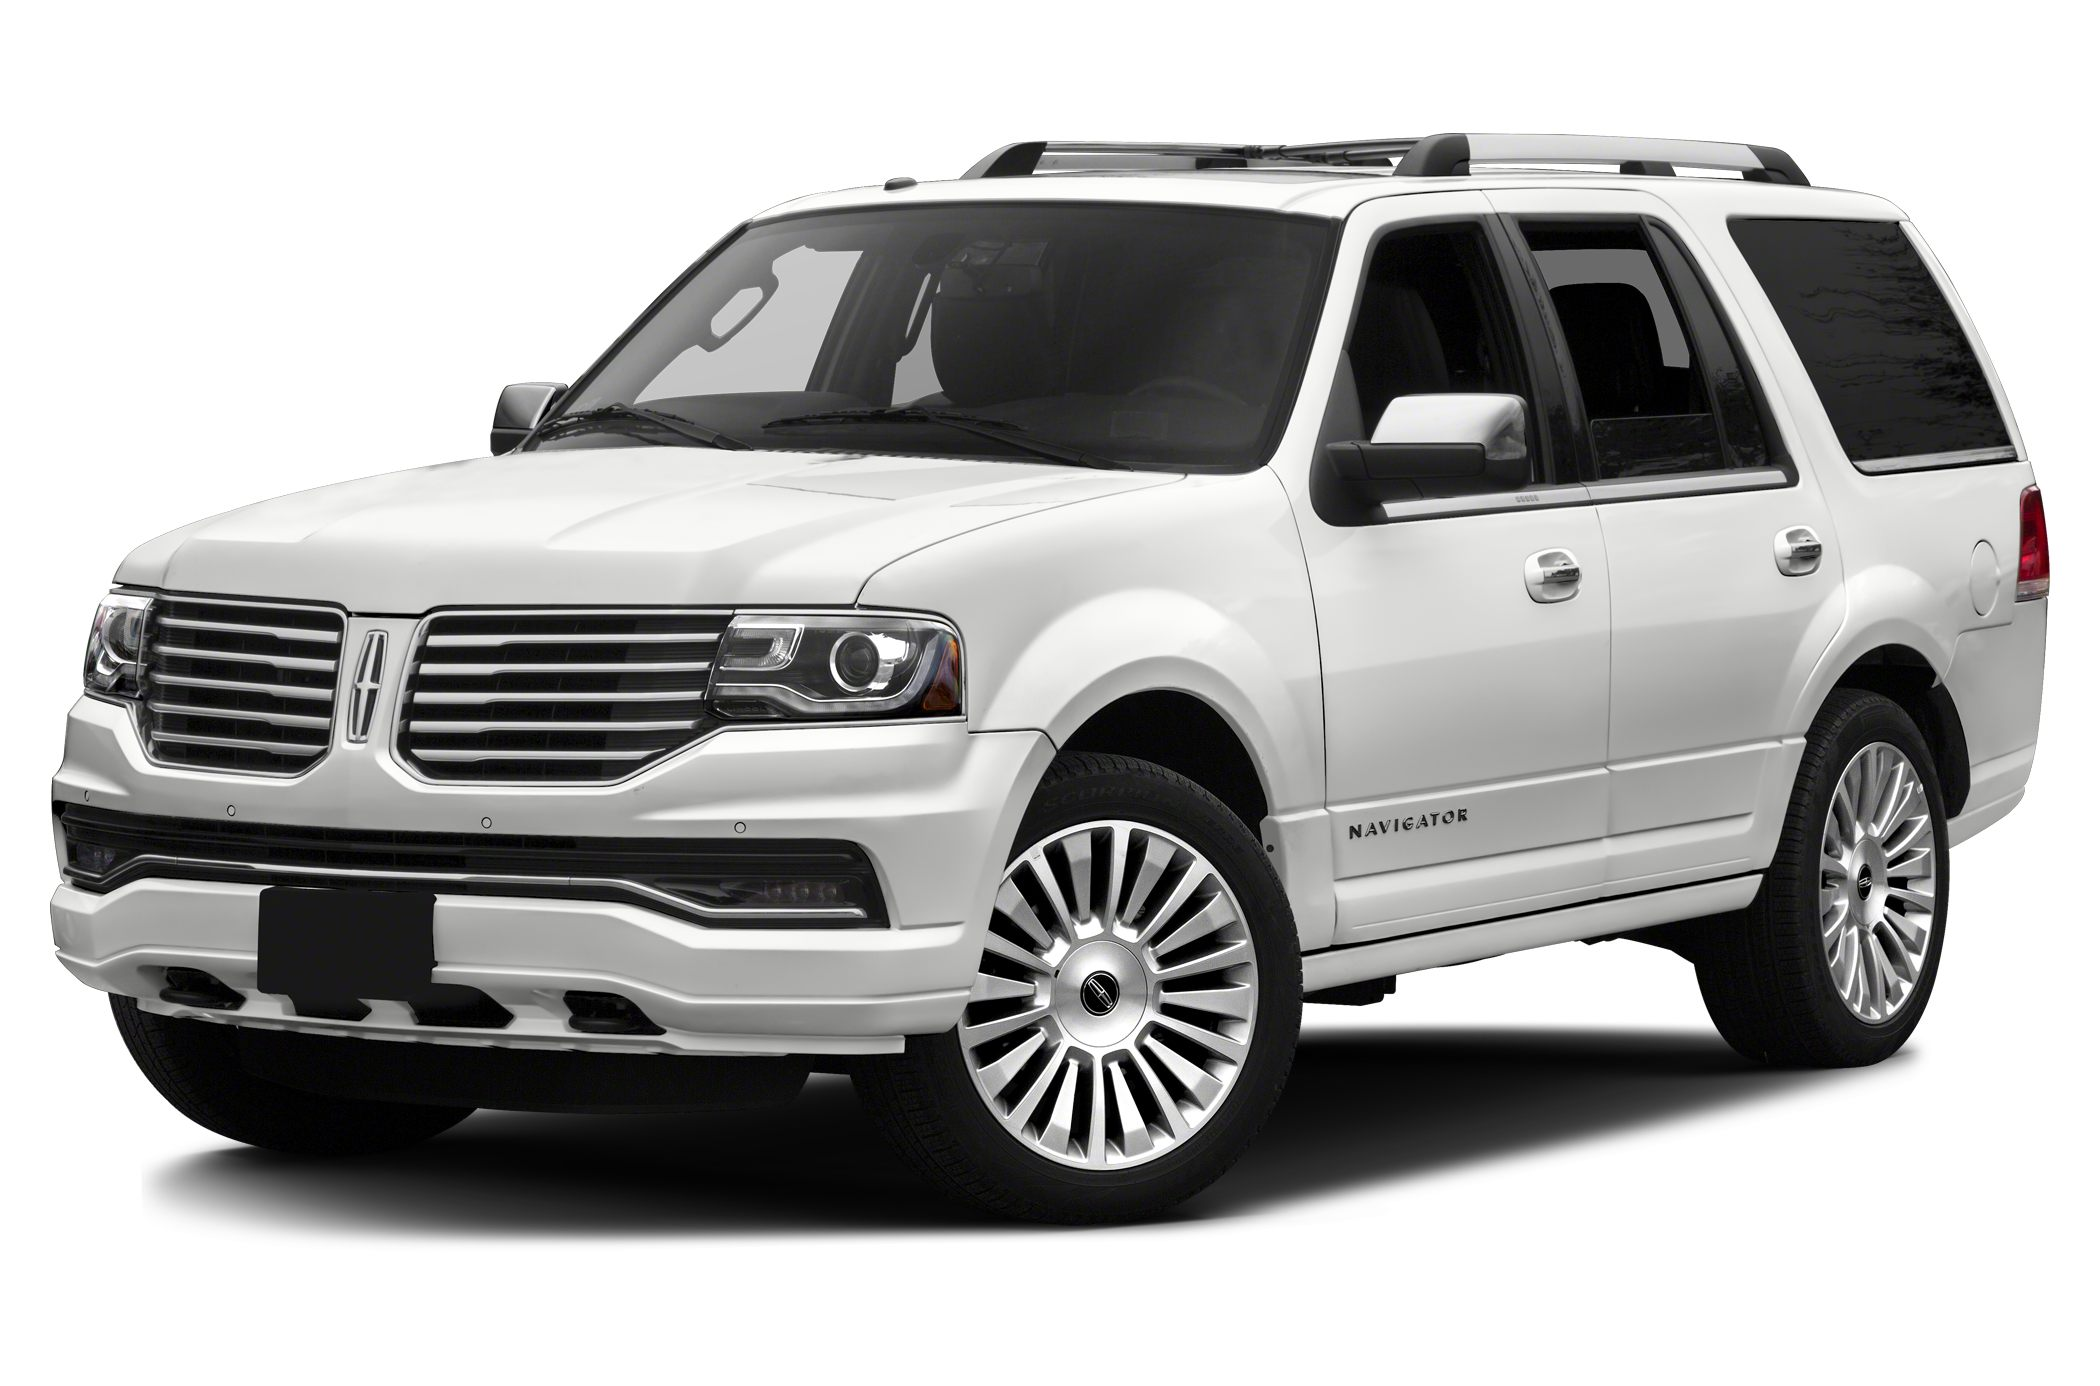 2015 Lincoln Navigator Base SUV for sale in Bonita Springs for $72,405 with 17 miles